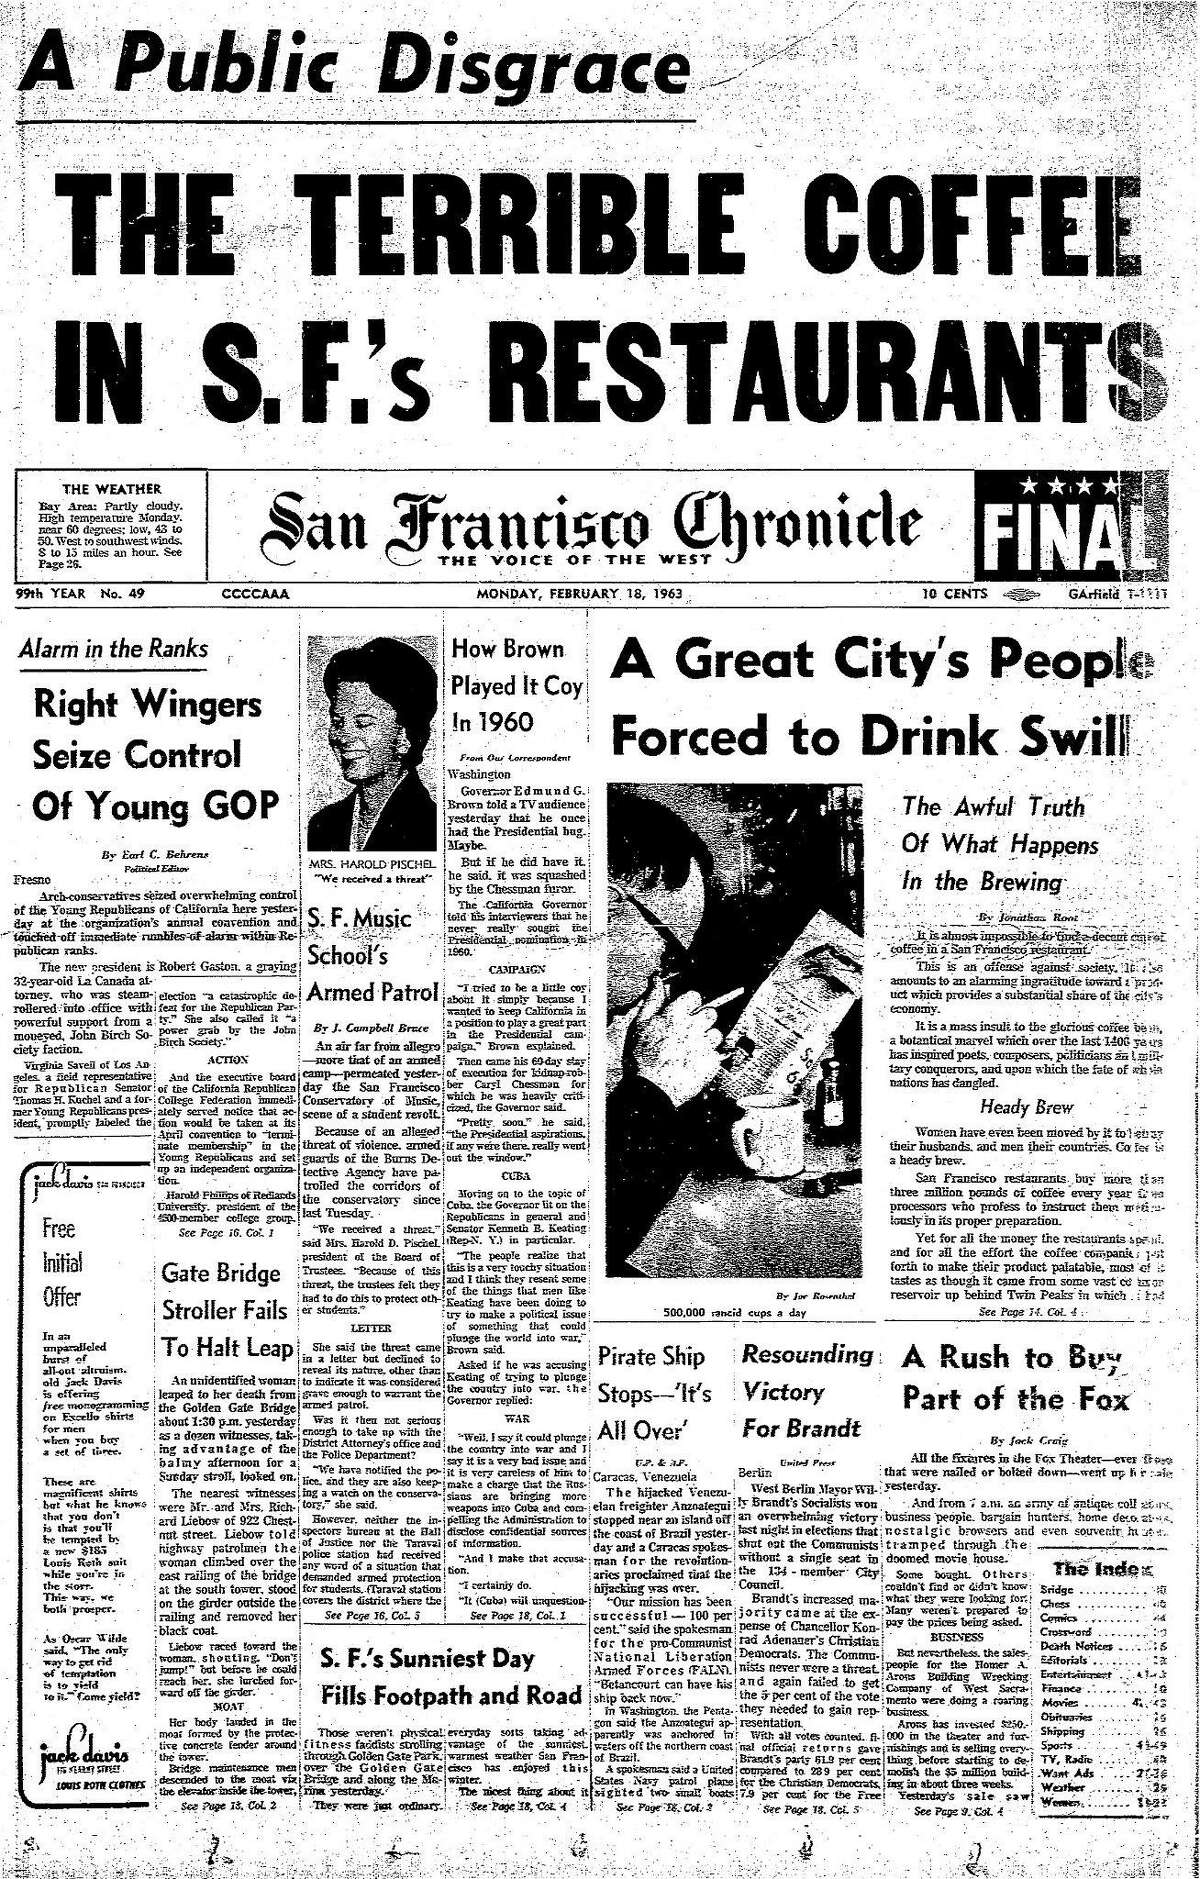 The Chronicle's front page from February 18, 1963 covers the terrible coffee in San Francisco's restaurants.